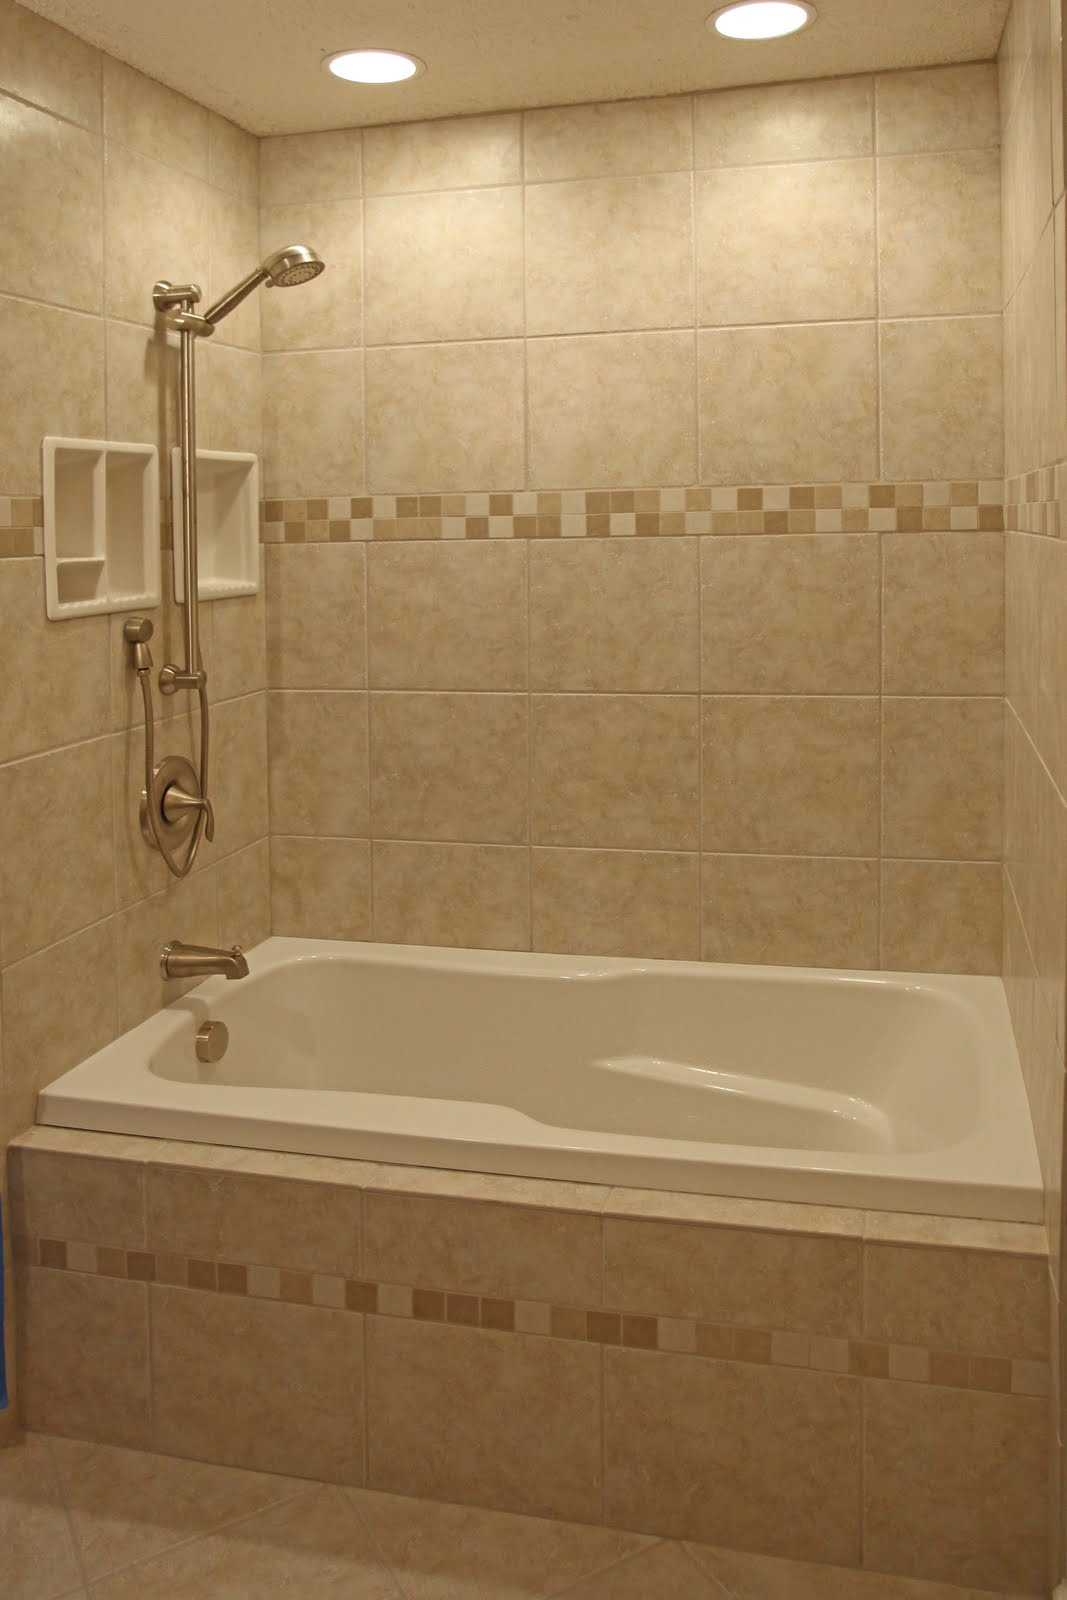 bathroom remodeling design ideas tile shower niches On bathroom tiles design